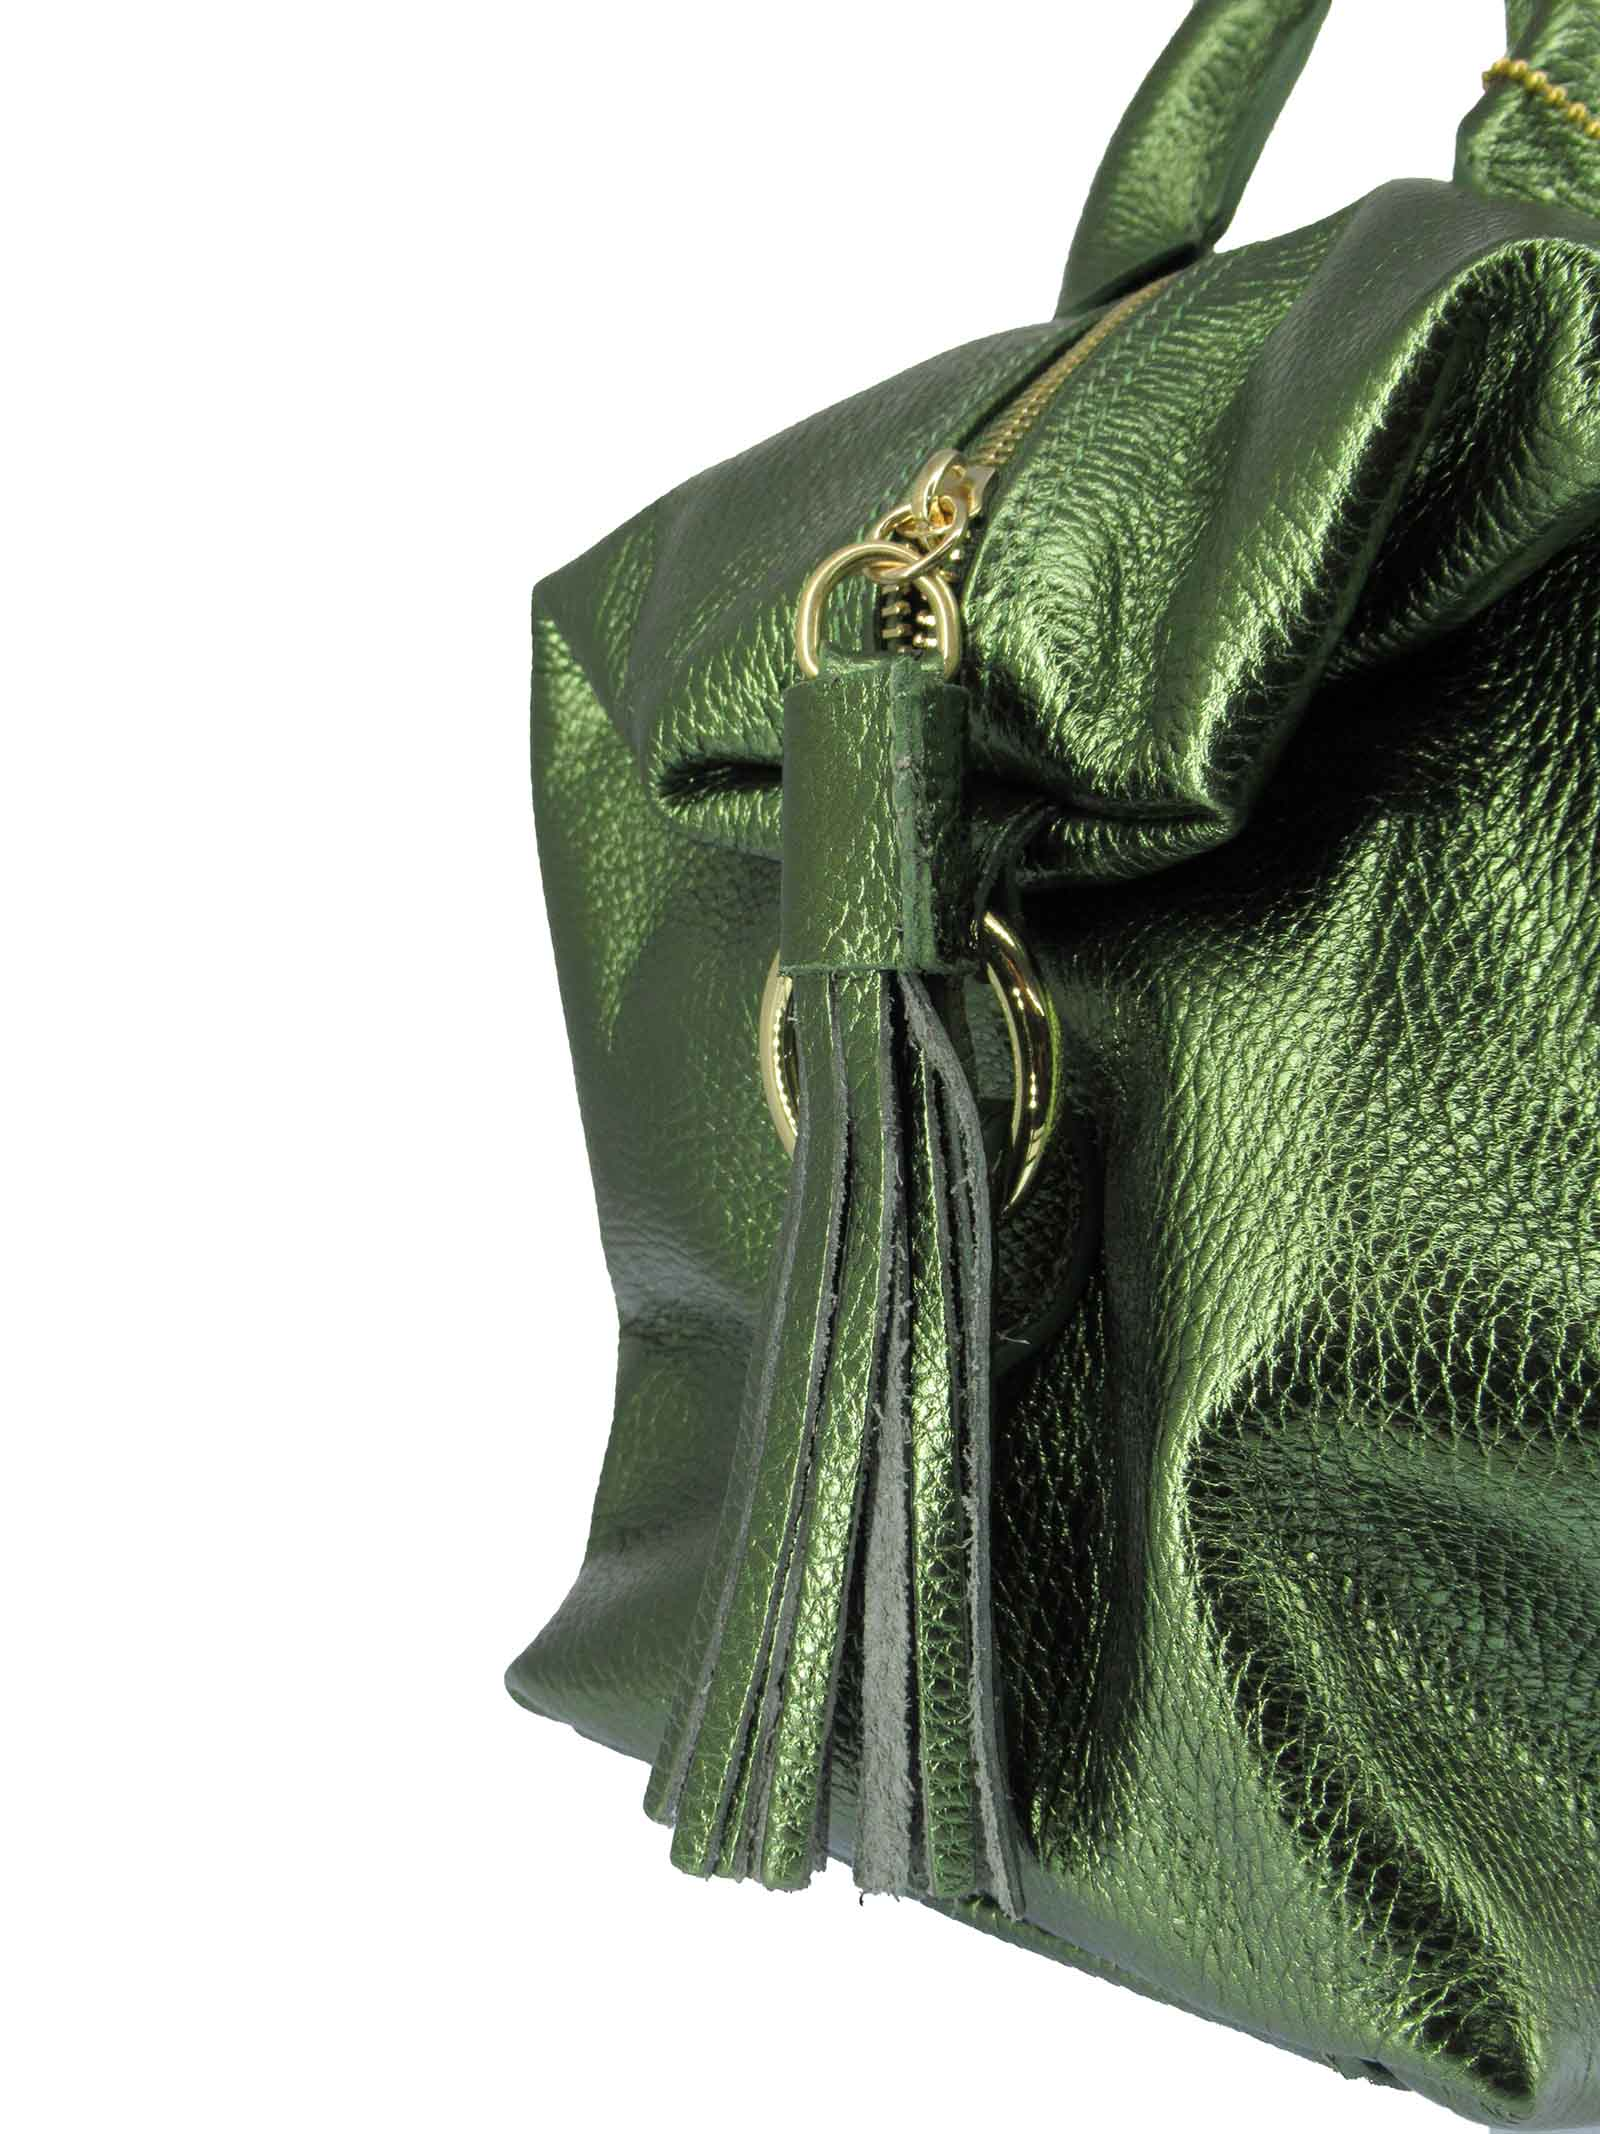 Women's River Shoulder Bag in Green Laminated Leather with Adjustable and Detachable Leather Shoulder Strap gd041c3111 Almala   Bags and backpacks   RIVER005